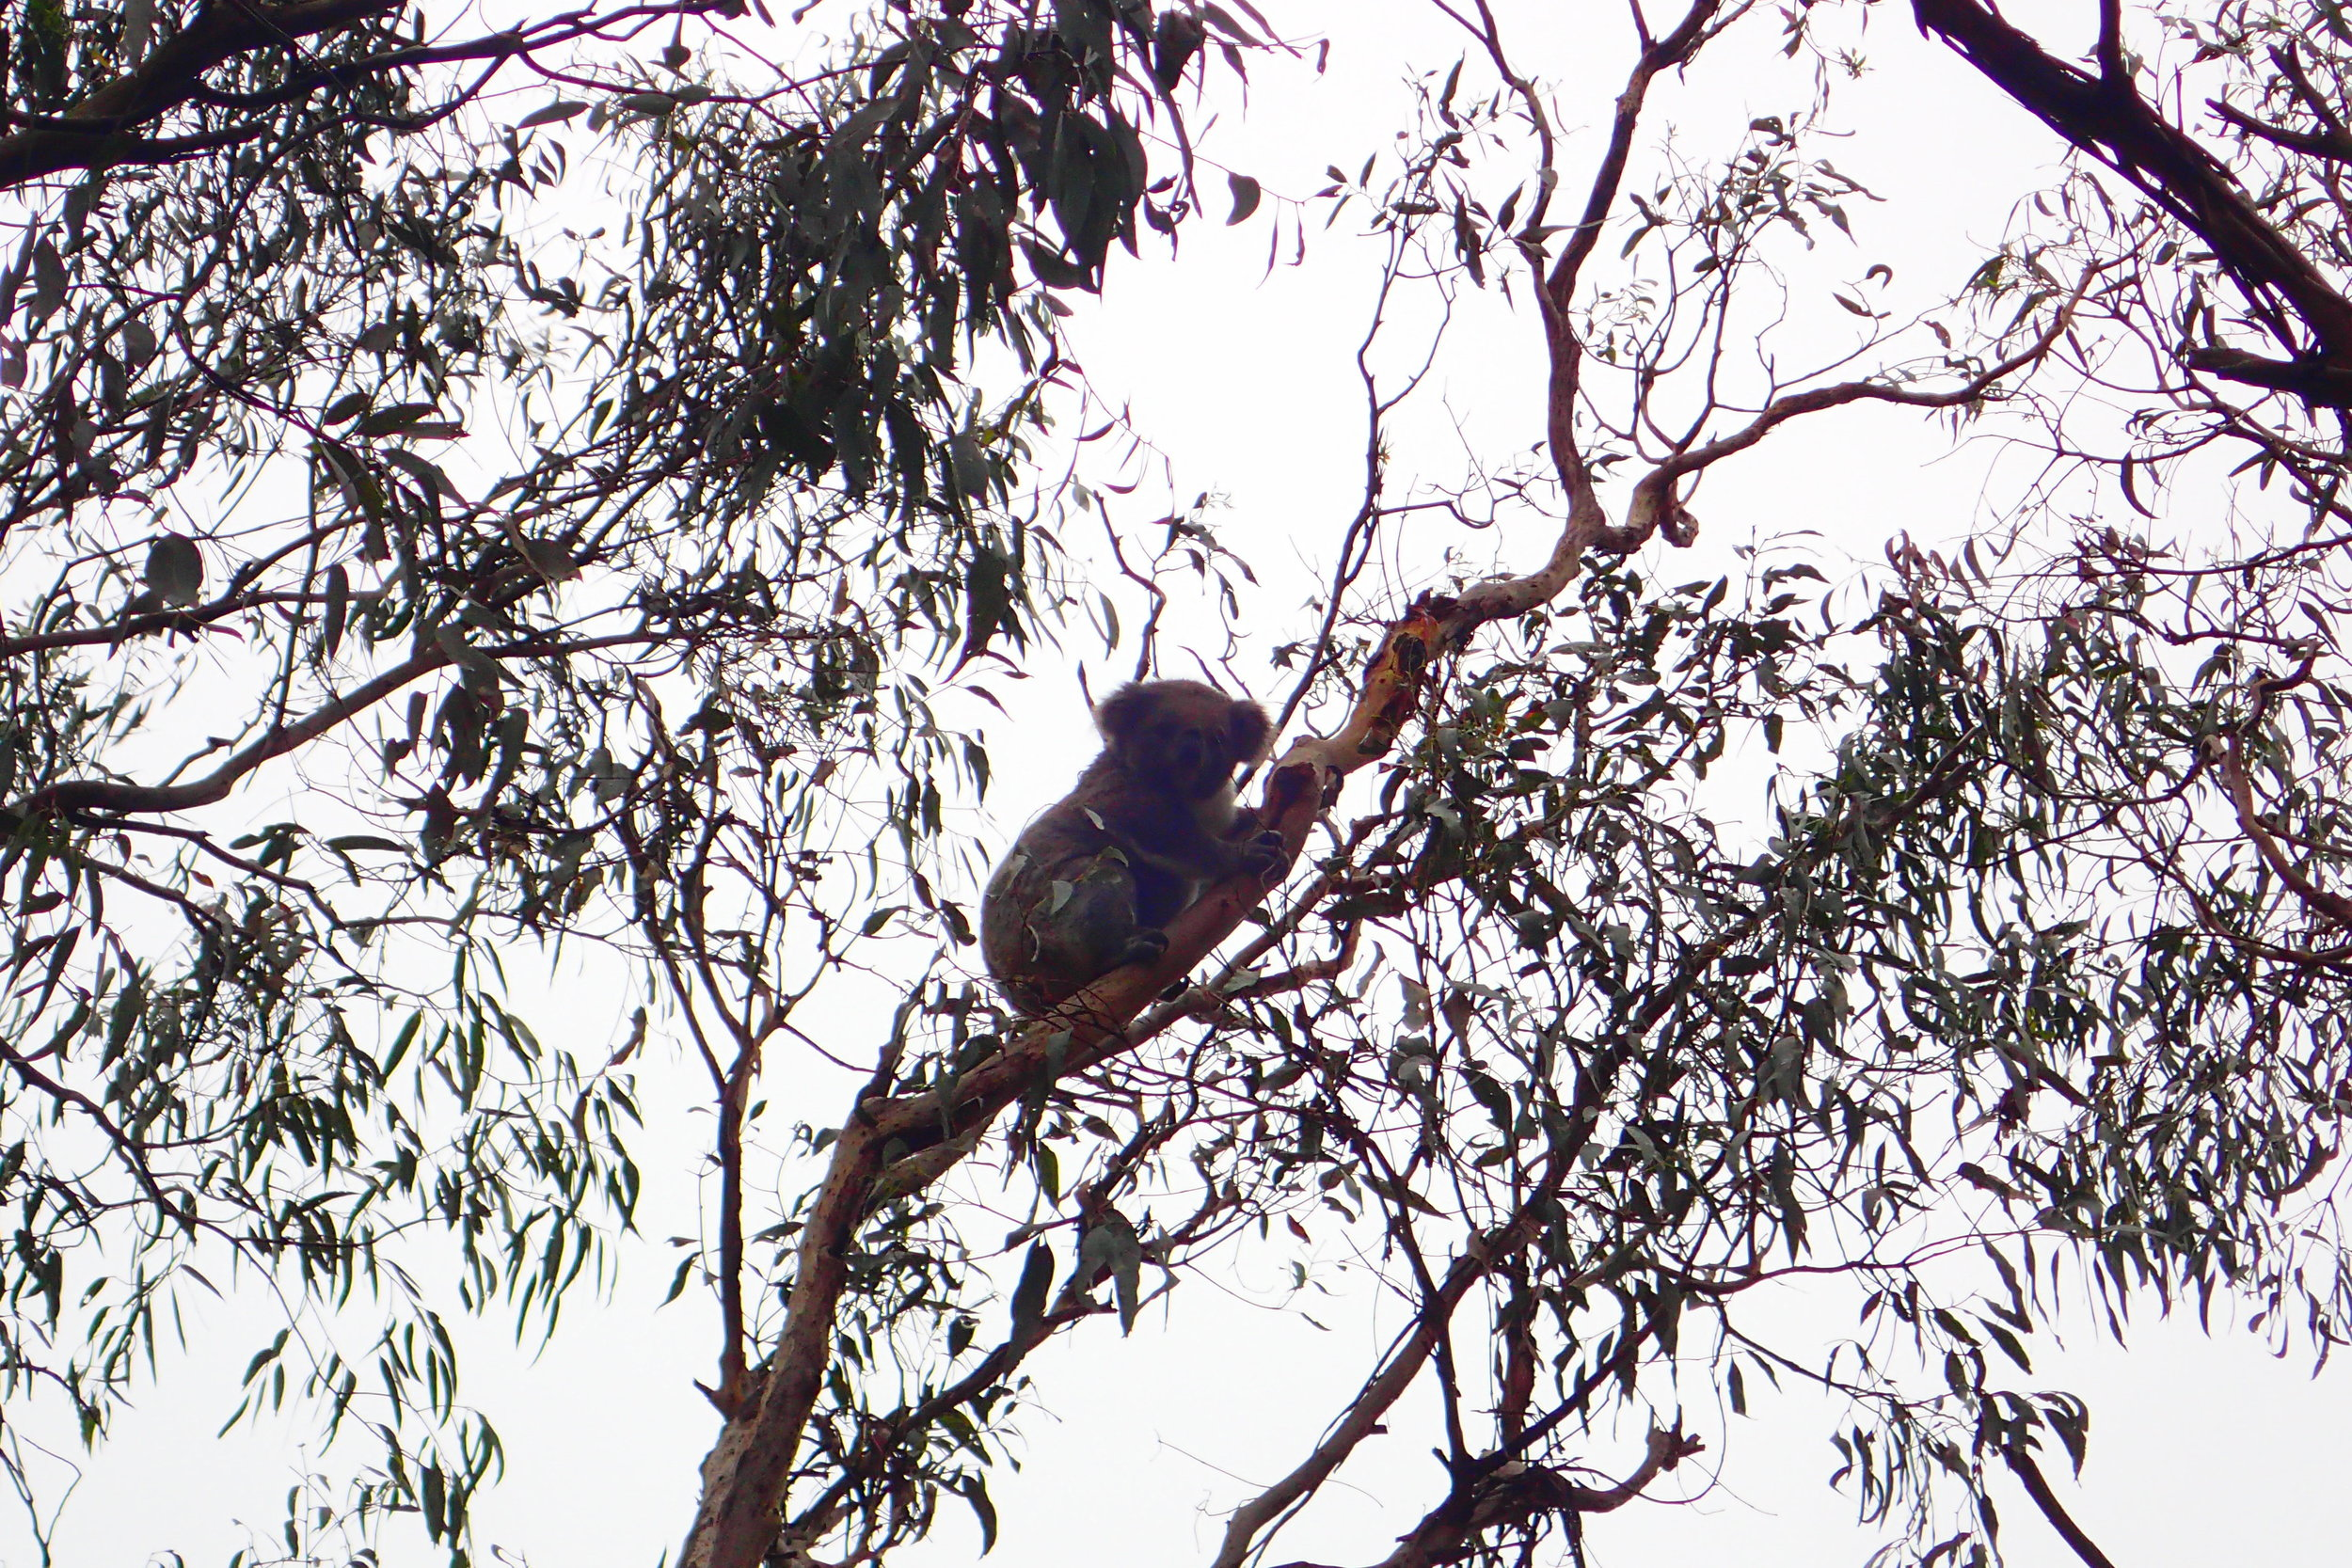 A koala spotted high above in the tree tops at a sanctuary in Australia